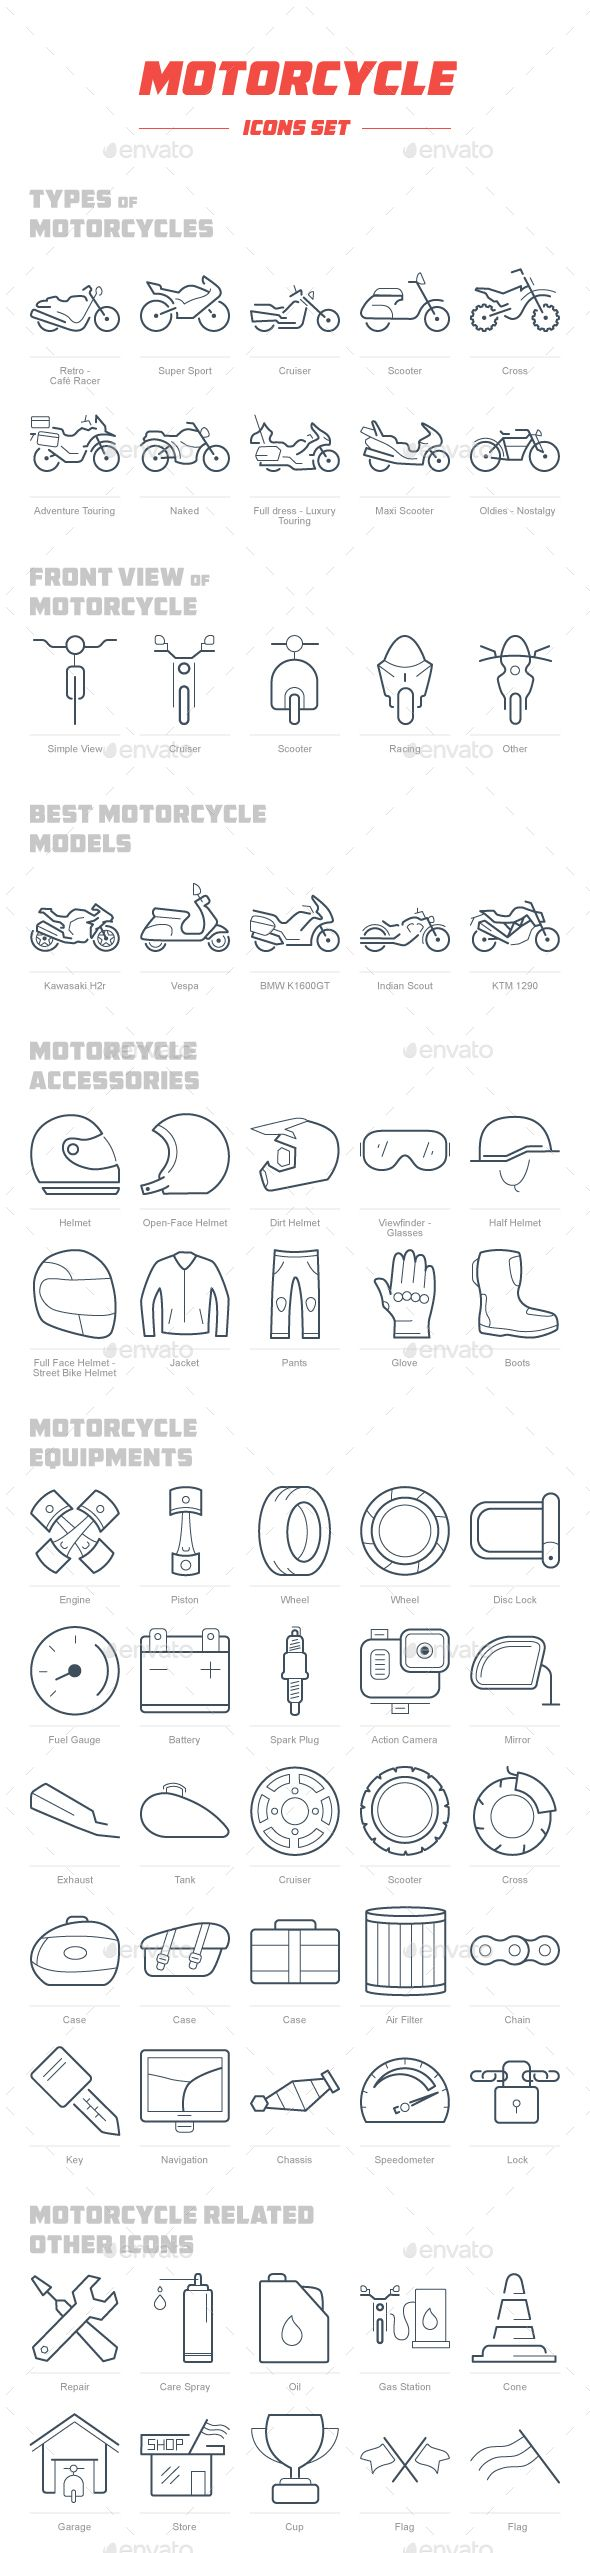 Motorcycle Icon Set — PSD Template #cruiser #Best Motorcycle Models • Download ➝ https://graphicriver.net/item/motorcycle-icon-set/18365362?ref=pxcr More